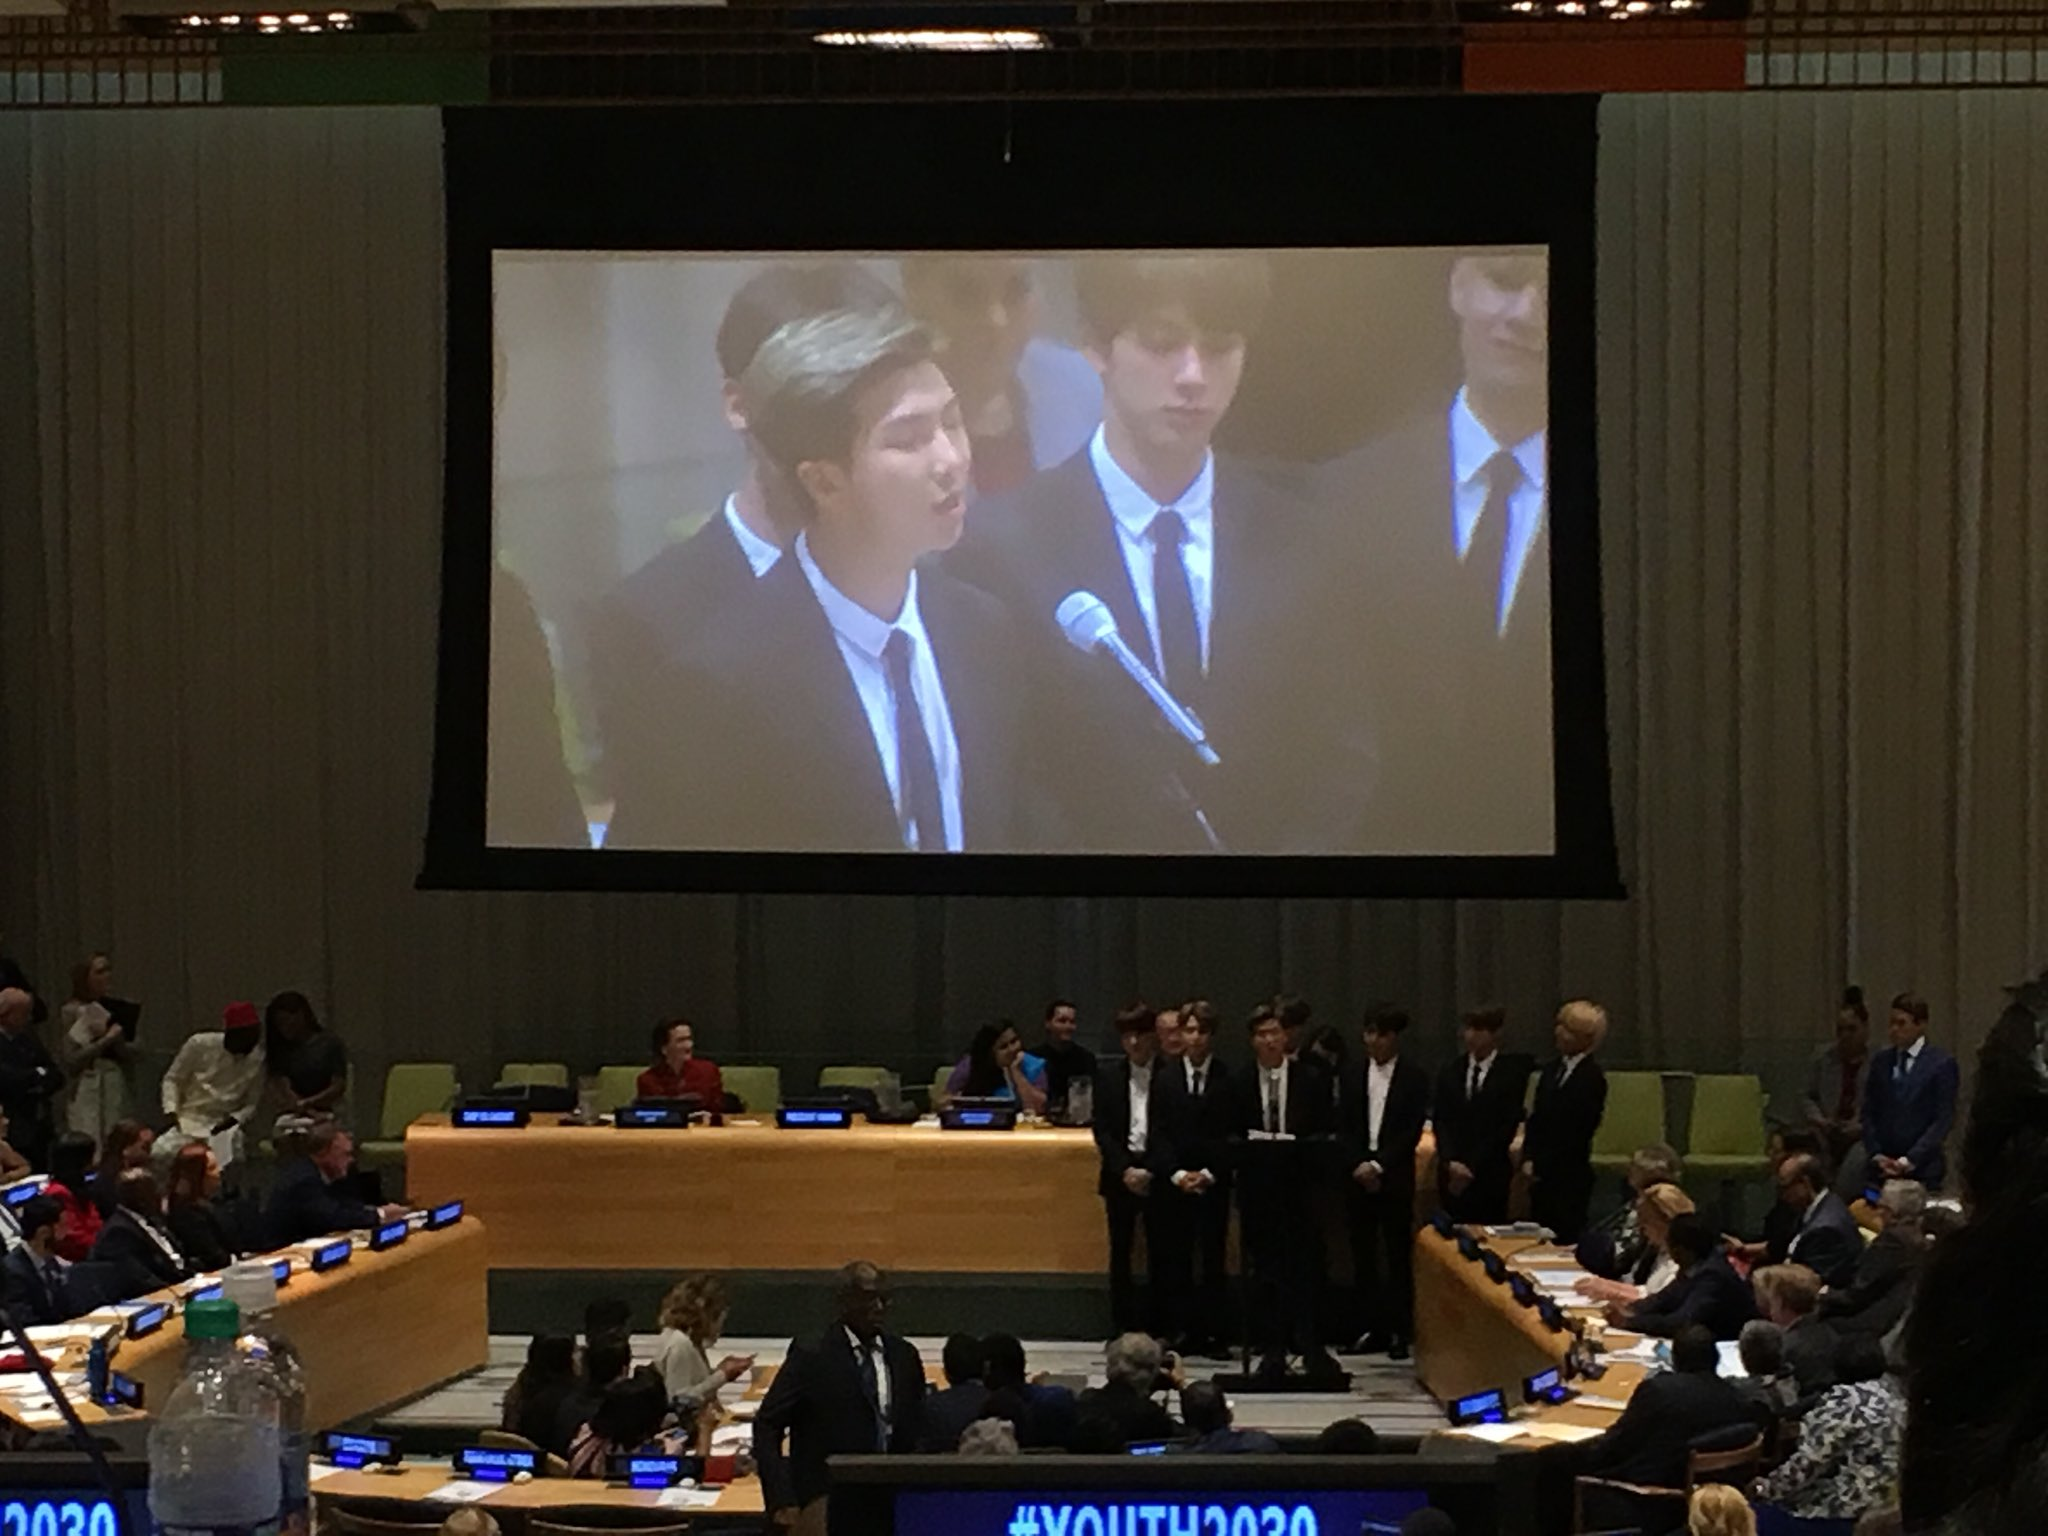 Speak for yourself. Love yourself. Make a name for yourself.   @BTS_twt offers words of wisdom at #Youth2030 https://t.co/80ZswIog4E